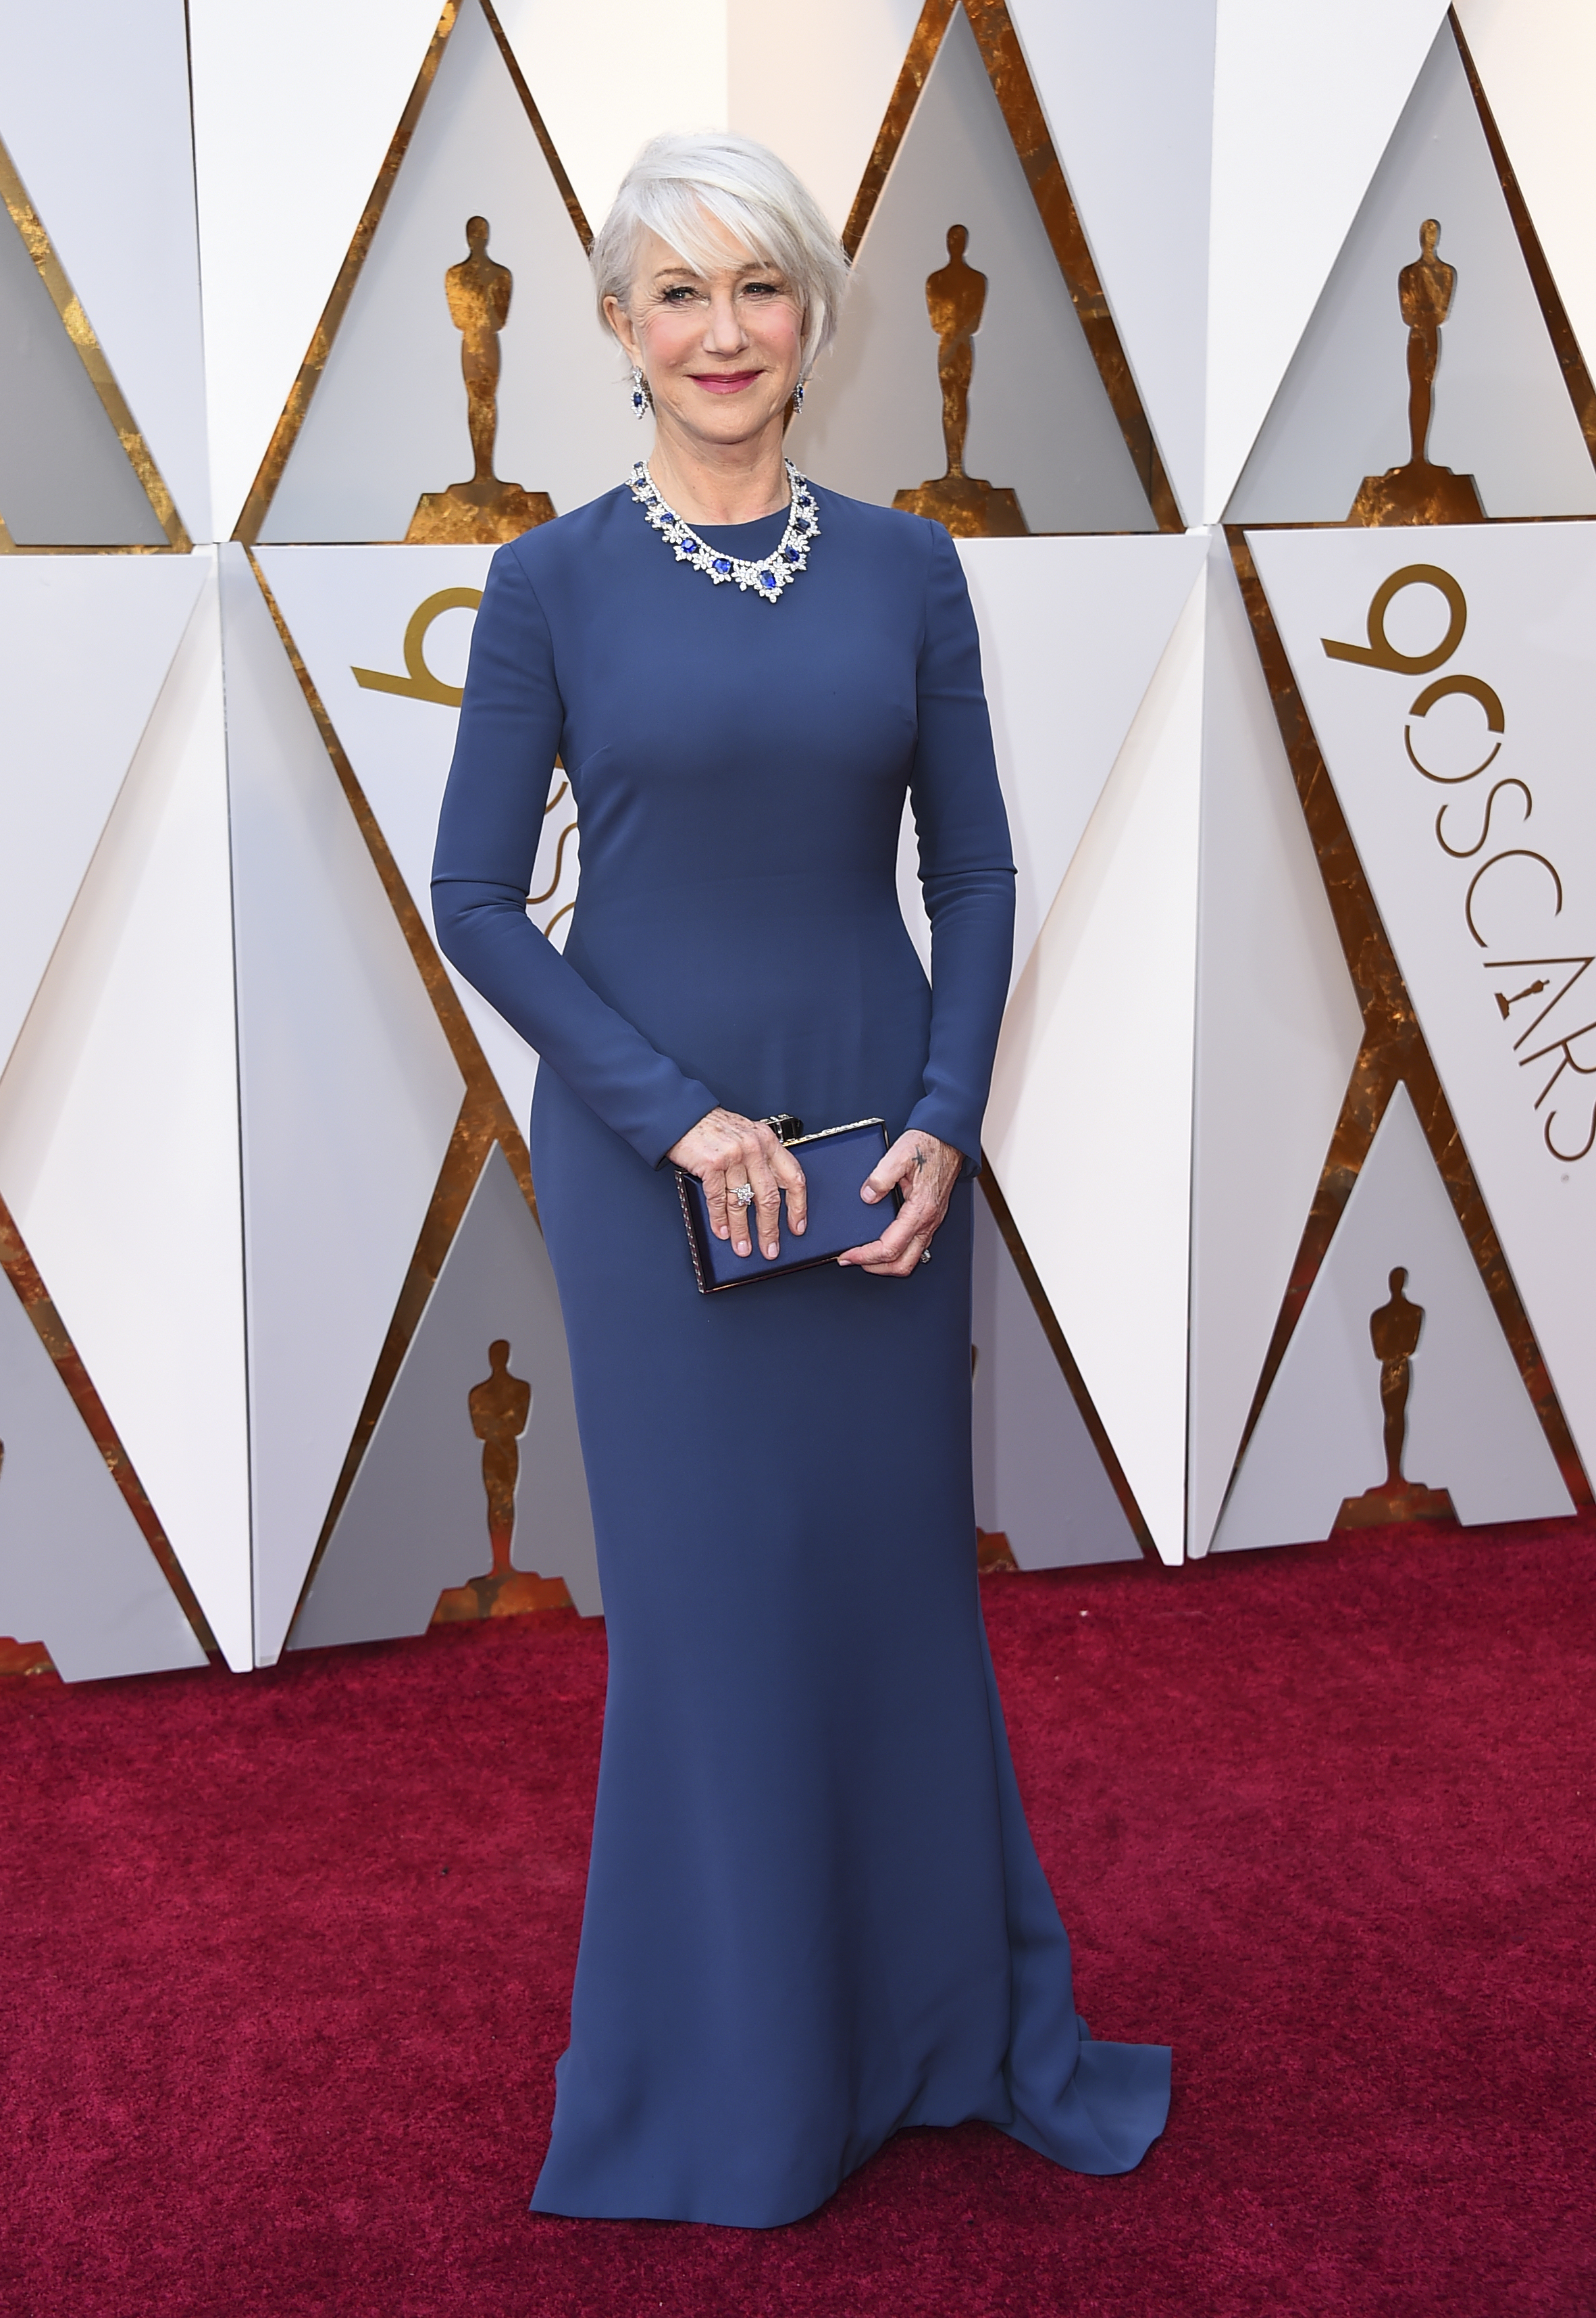 "<div class=""meta image-caption""><div class=""origin-logo origin-image none""><span>none</span></div><span class=""caption-text"">Helen Mirren arrives at the Oscars on Sunday, March 4, 2018, at the Dolby Theatre in Los Angeles. (Jordan Strauss/Invision/AP)</span></div>"